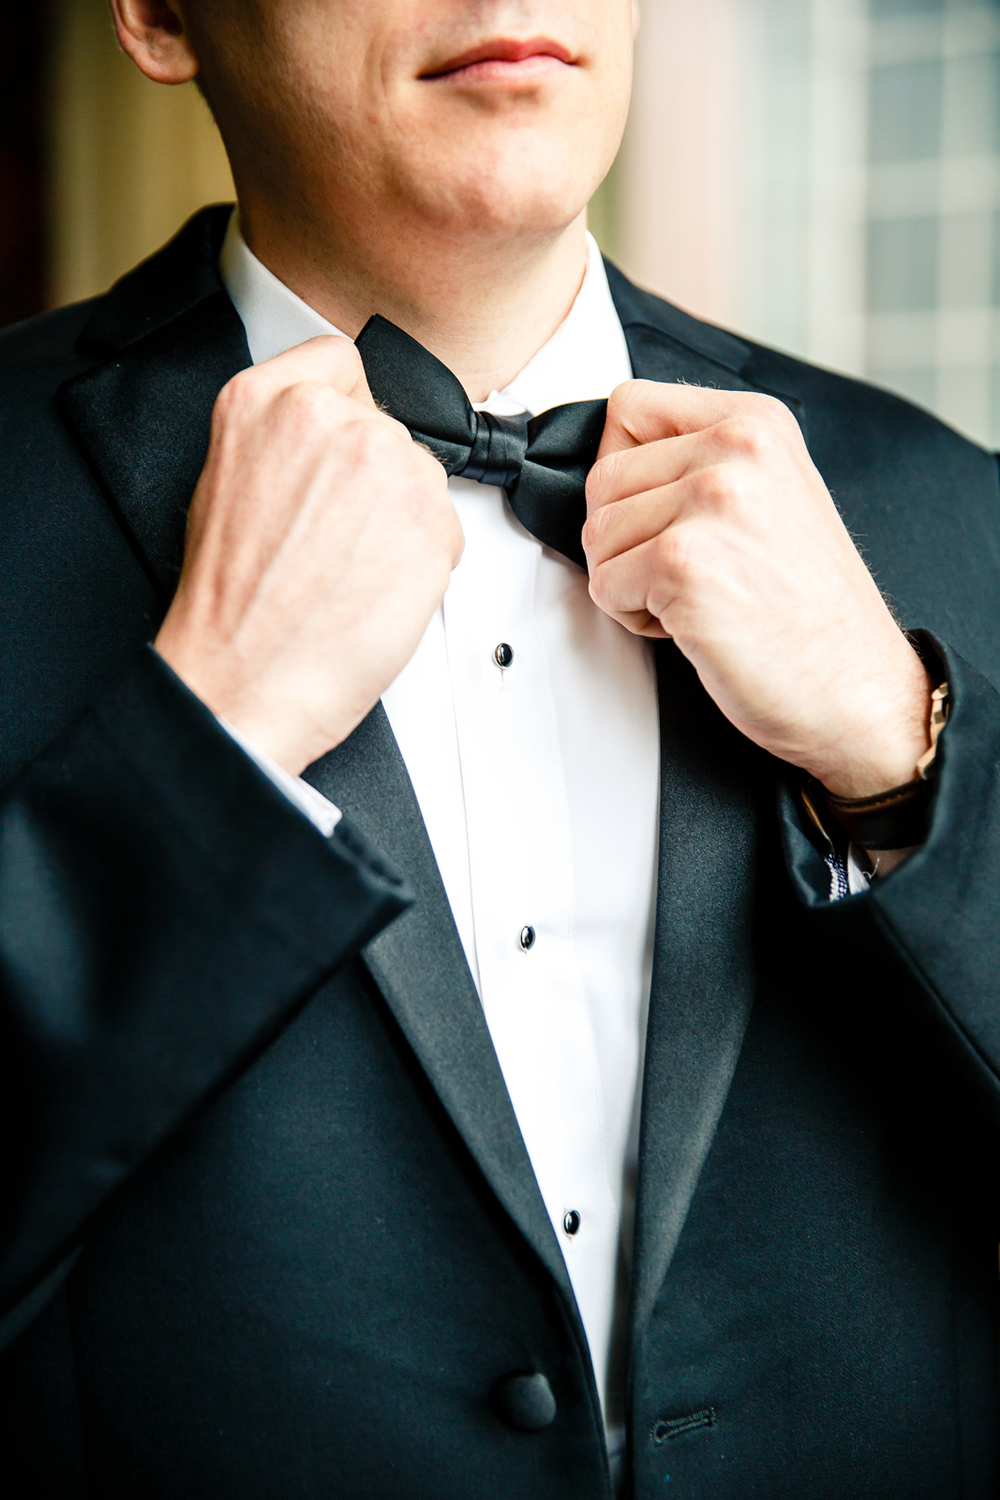 Groom Getting Ready Embassy Suites Downtown St. Louis Wedding Photographers by Oldani Photography 2.jpg